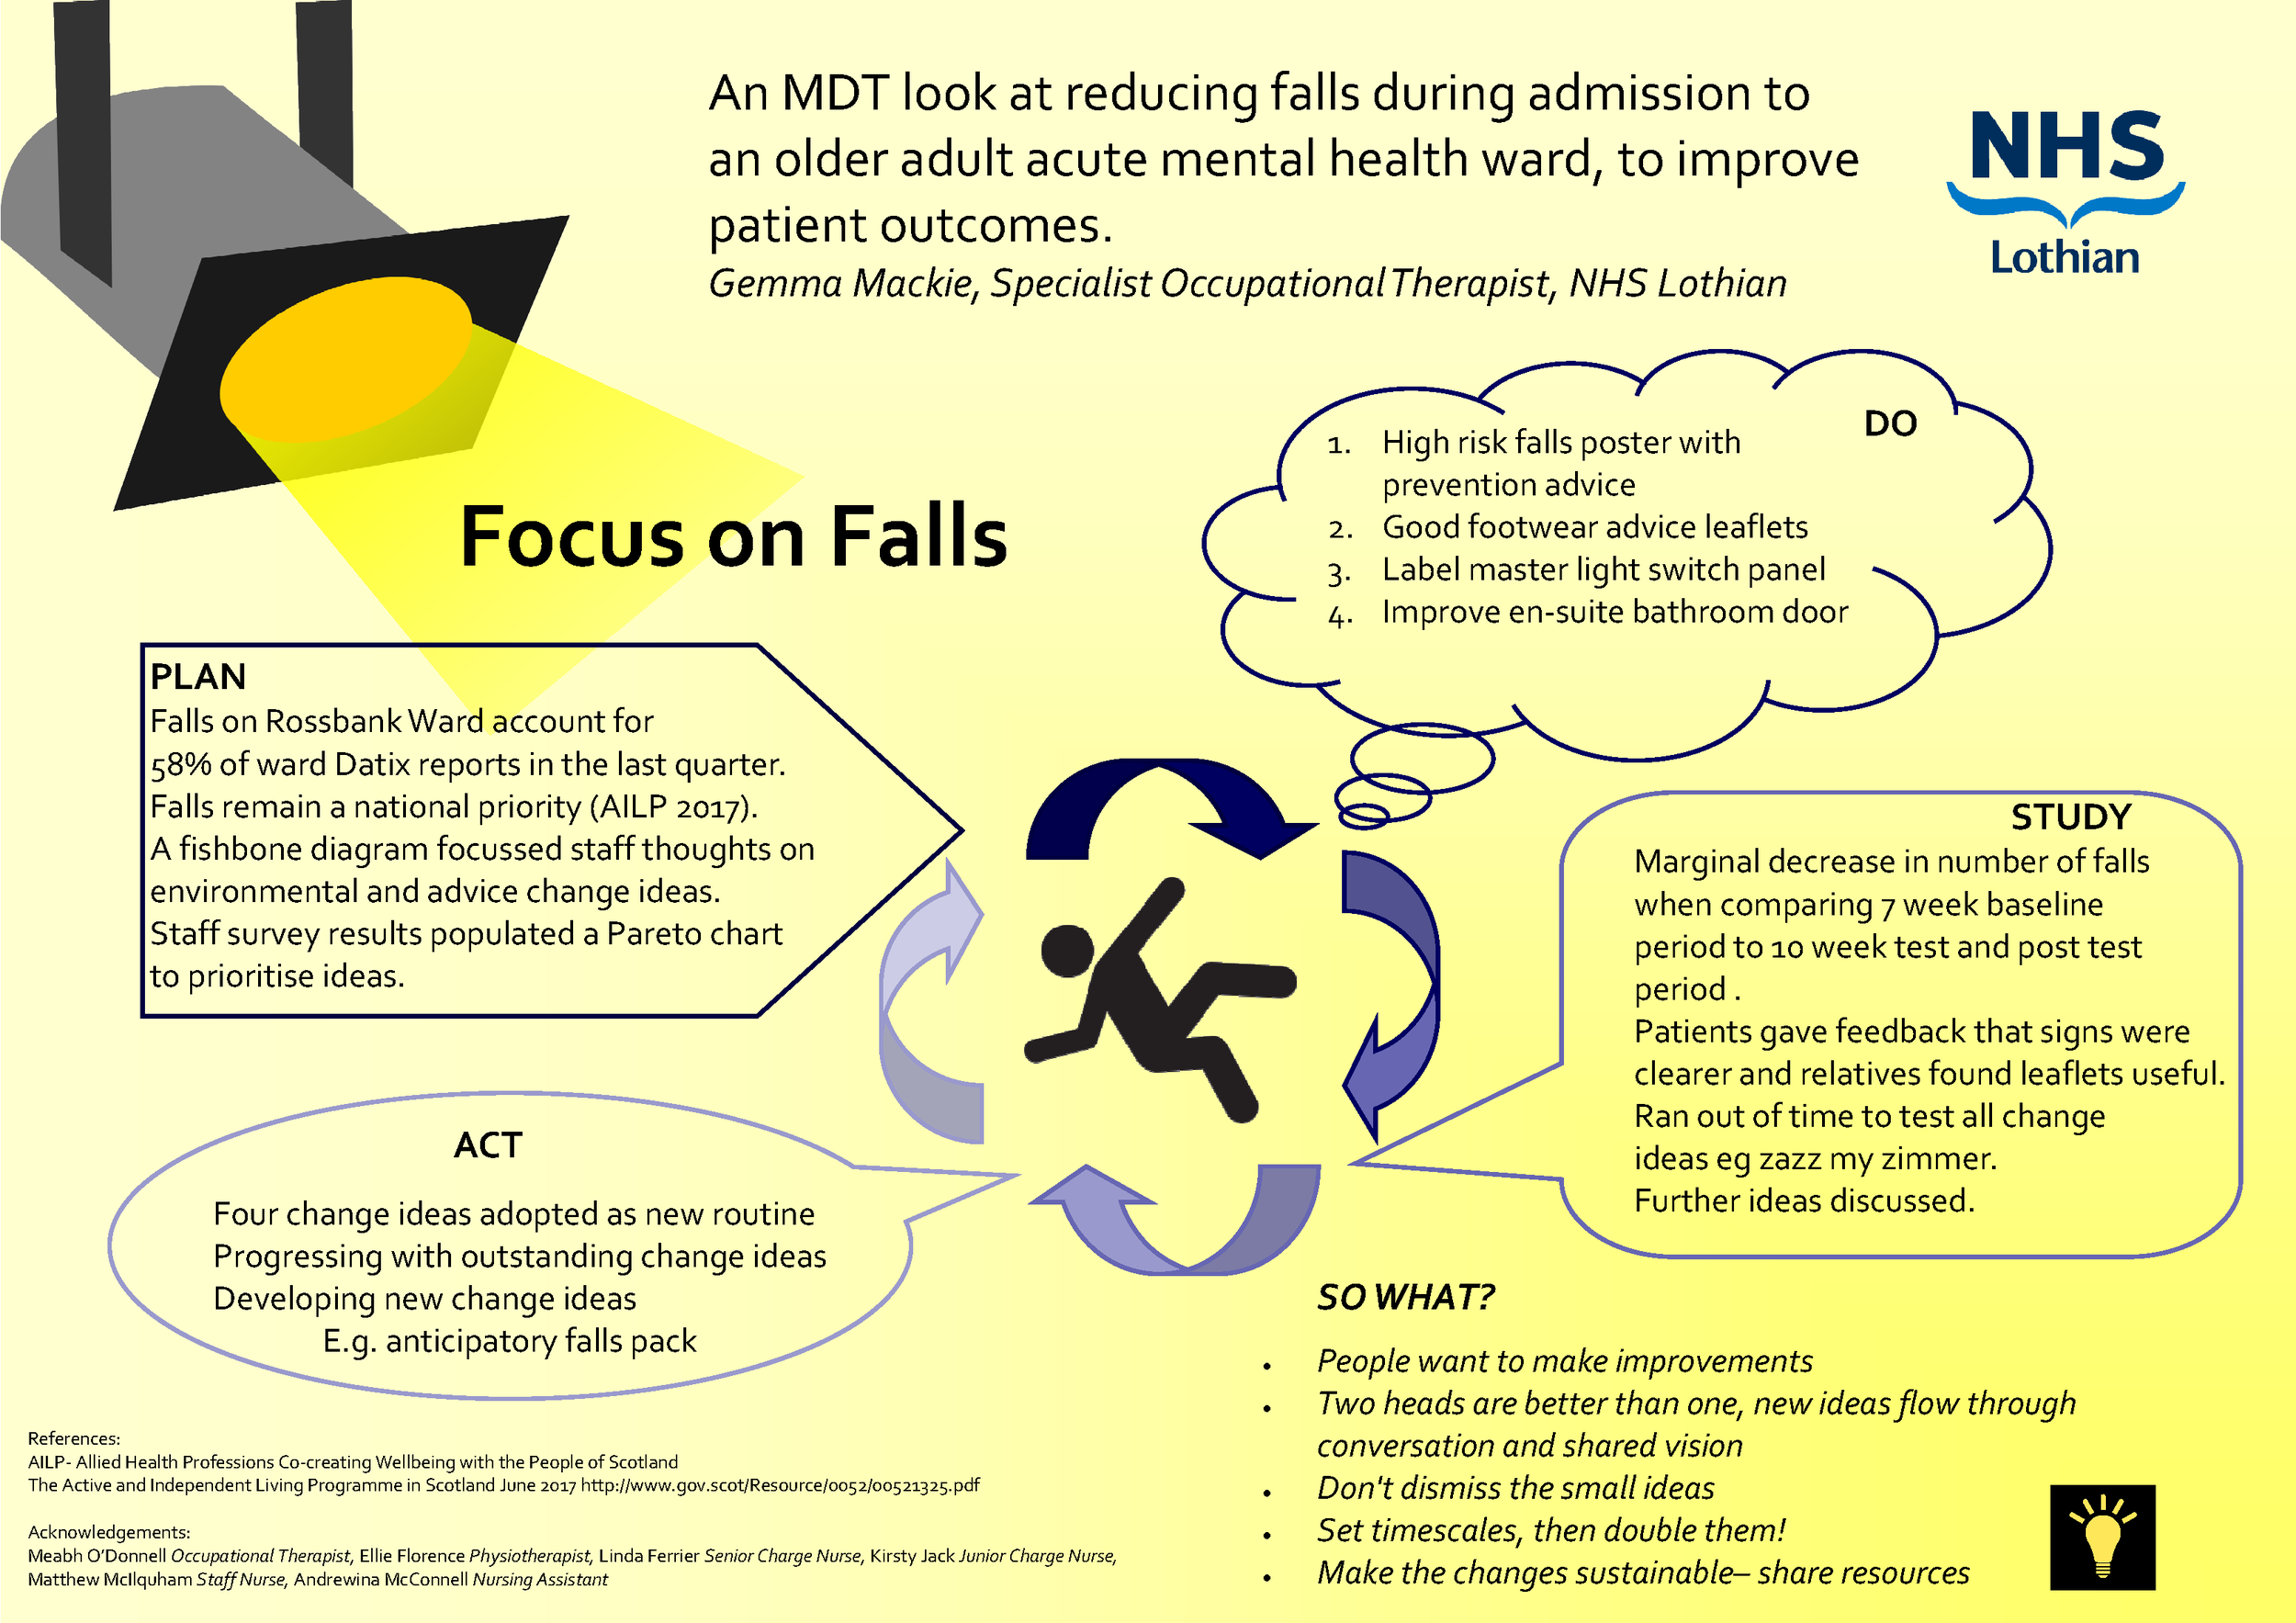 Gemma Mackie Focus on Falls Poster.png